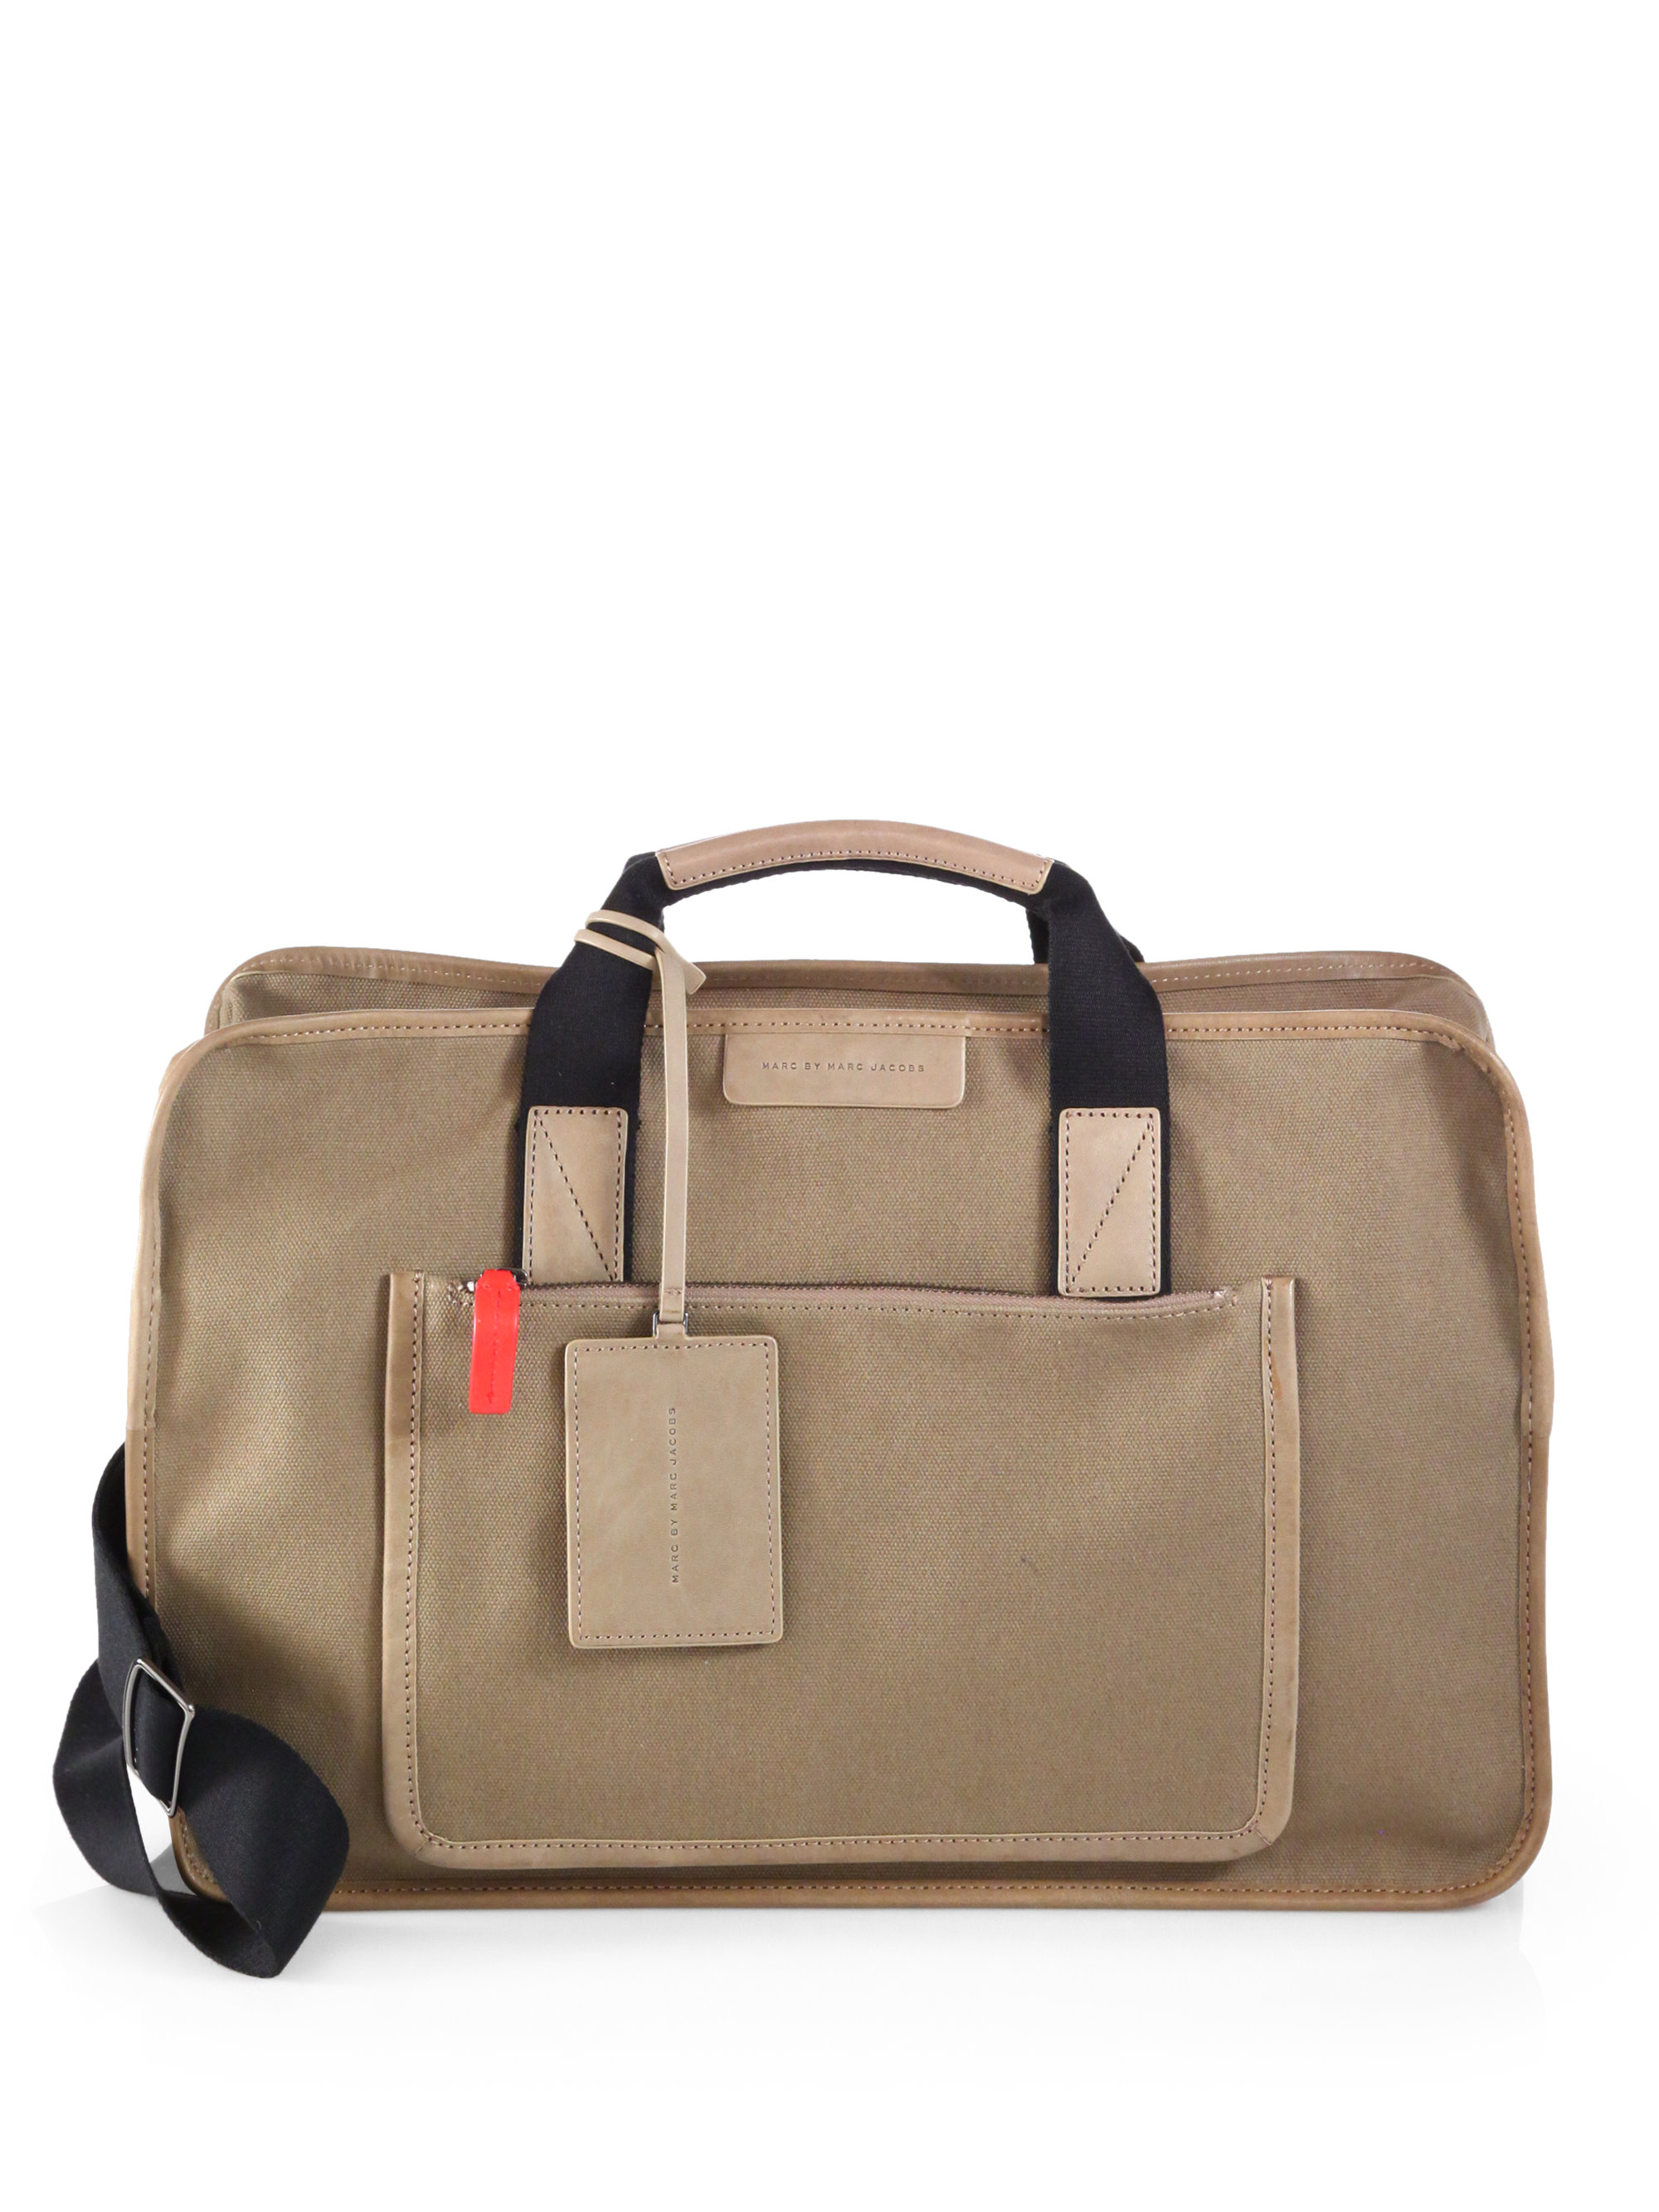 938c7df1ff Lyst - Marc By Marc Jacobs Leather-Trimmed Waxed Canvas Duffel Bag ...